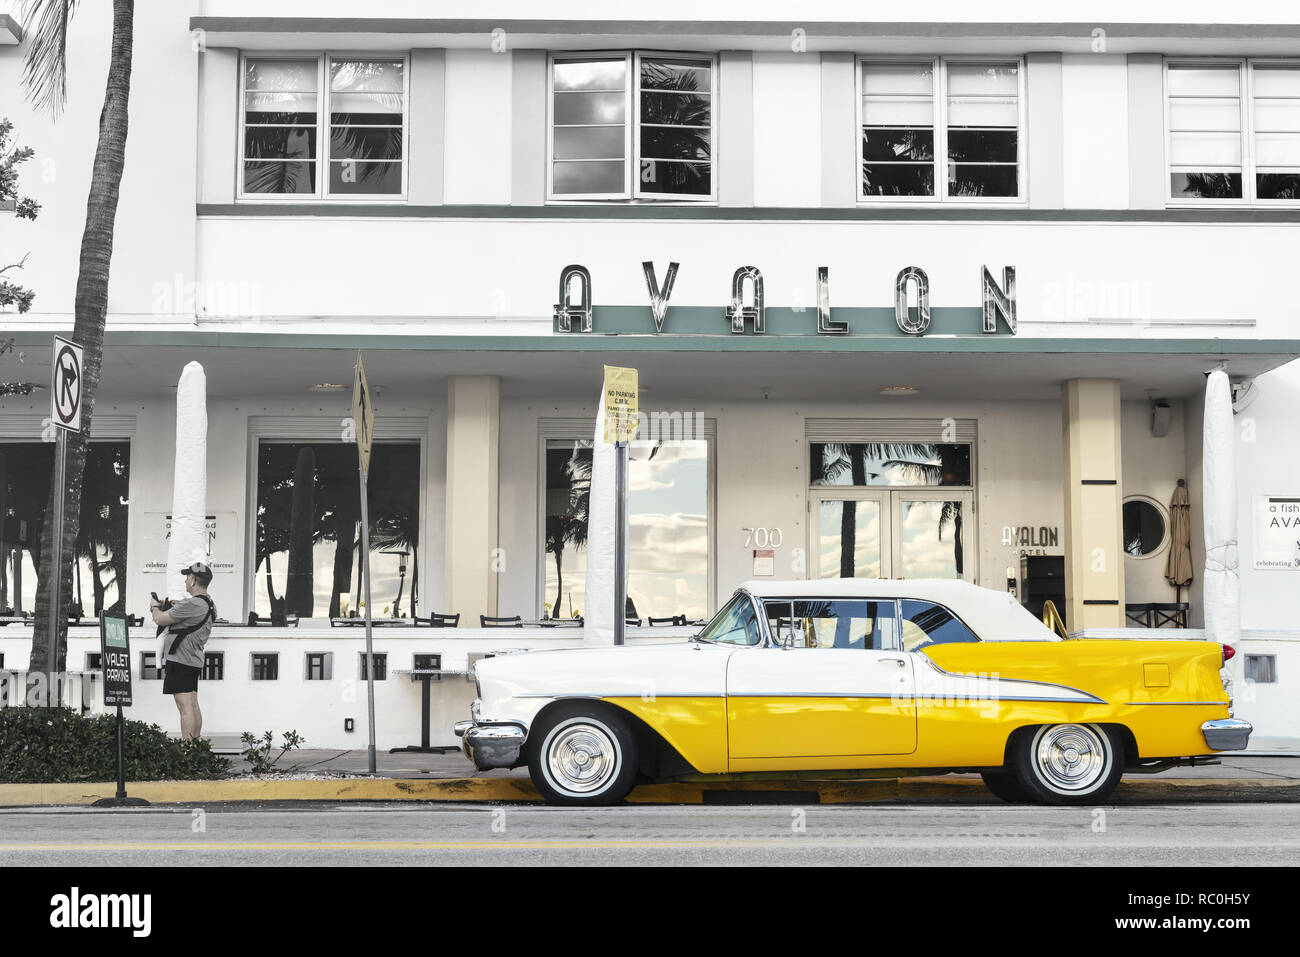 25 December 2019 - South Beach Miami, USA. Classic 1955 Oldsmobile Super 88 convertible in yellow parked near Avalon Art Deco hotel. - Stock Image